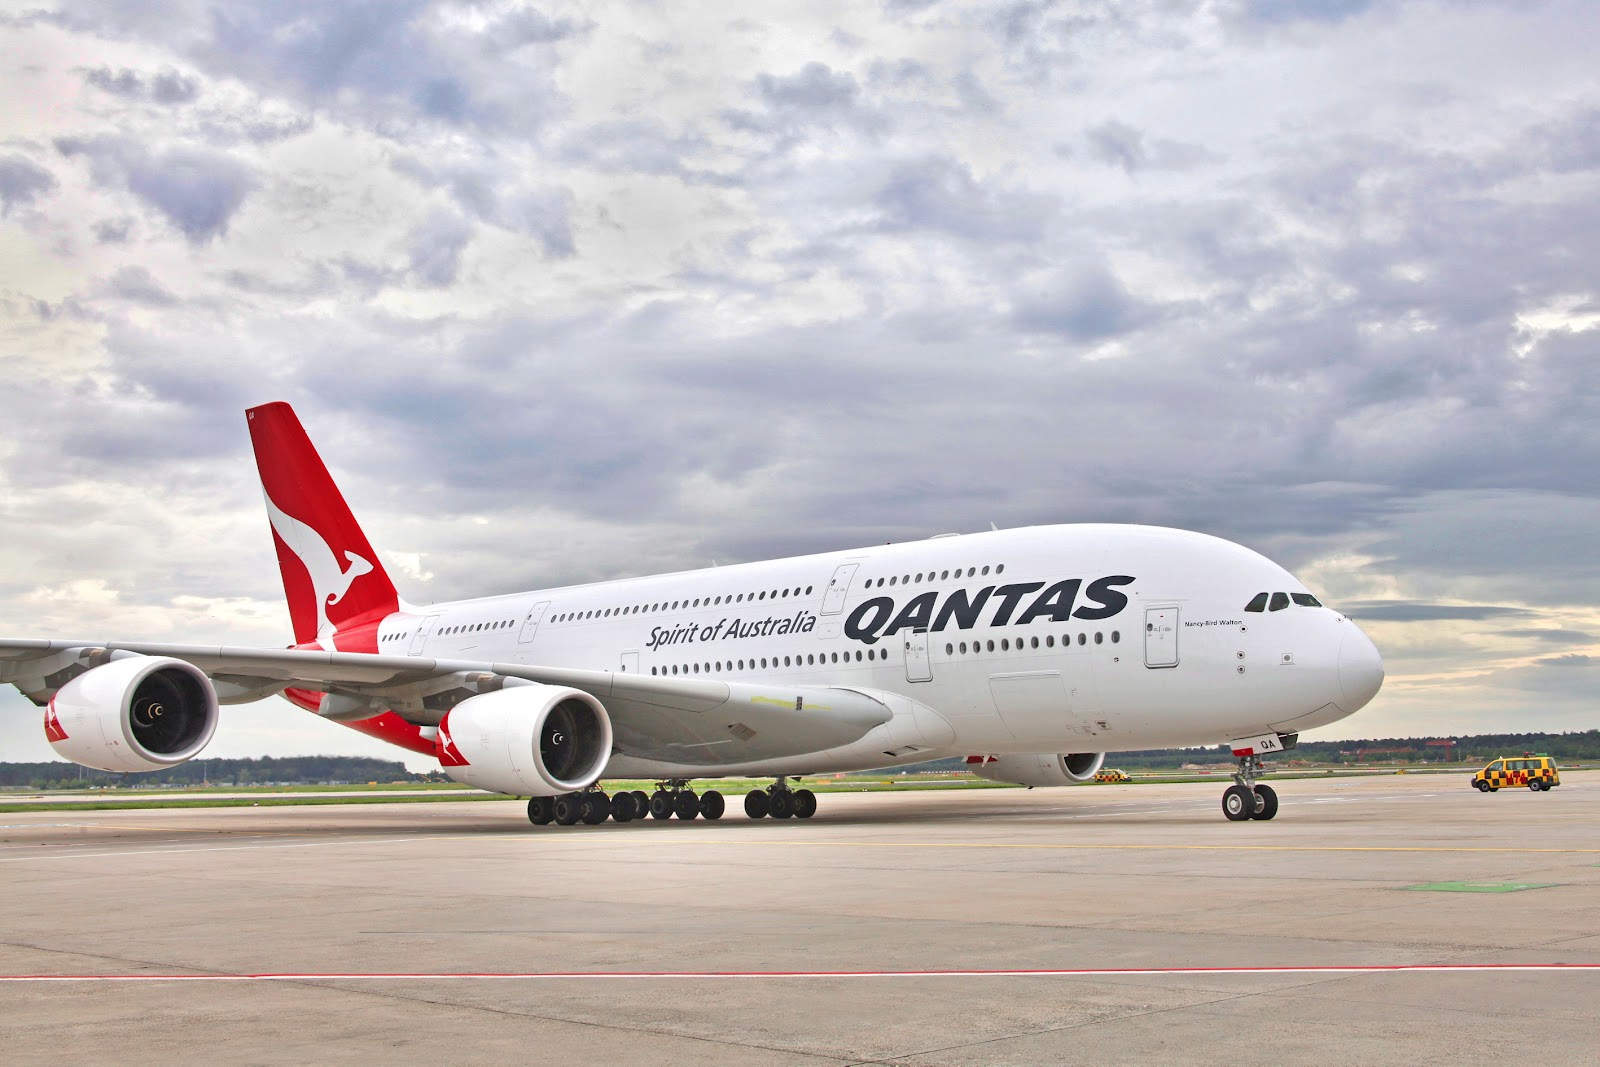 Airbus A380 Nancy bird Walton Qantas Airlines Aircraft Wallpaper 2289 1600x1067